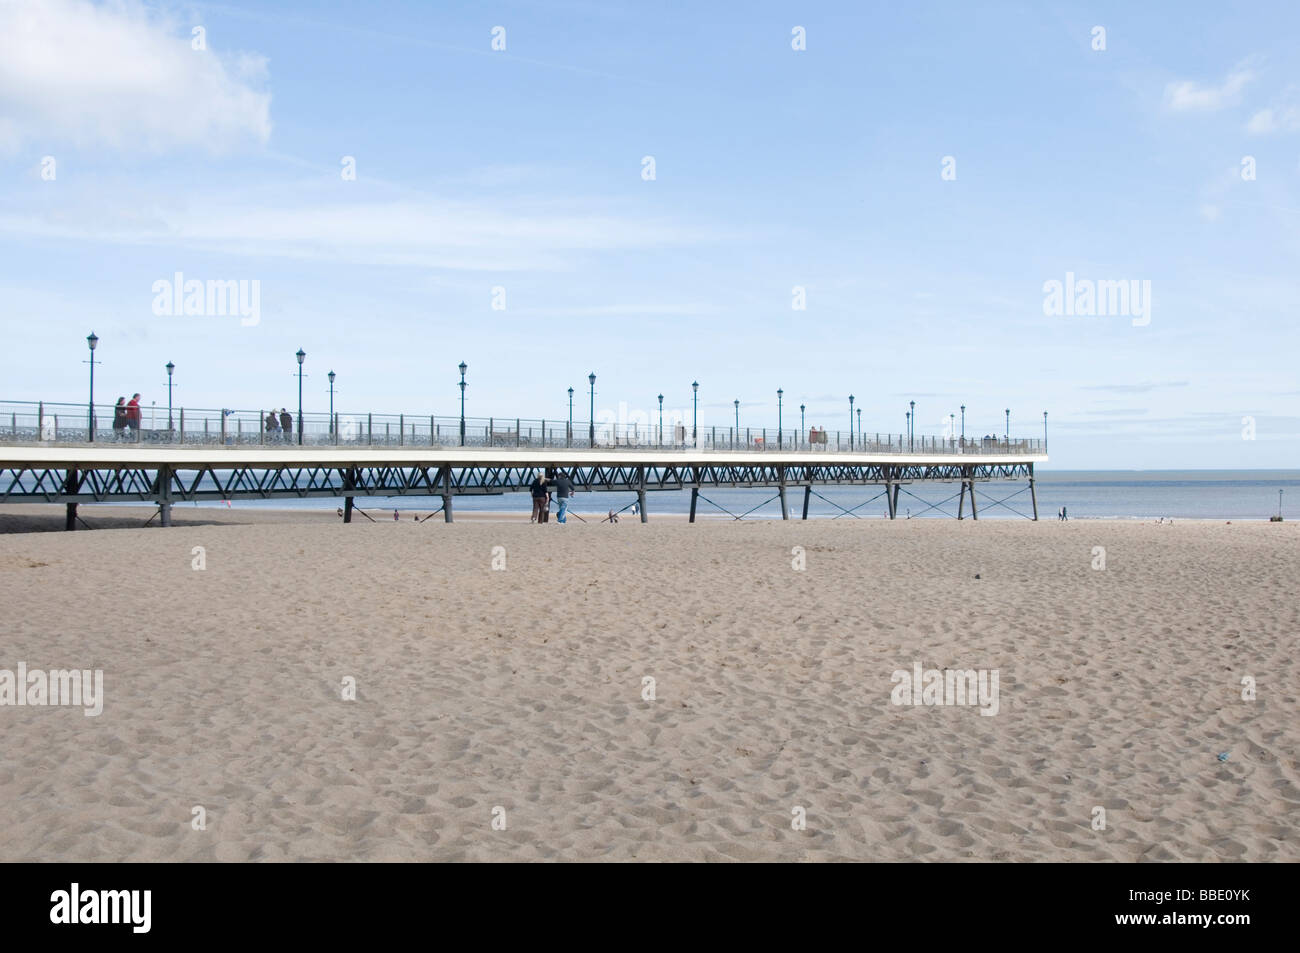 skegness linconshire coast seaside resort uk england english poer beach beaches piers sand north sea tide gone out - Stock Image